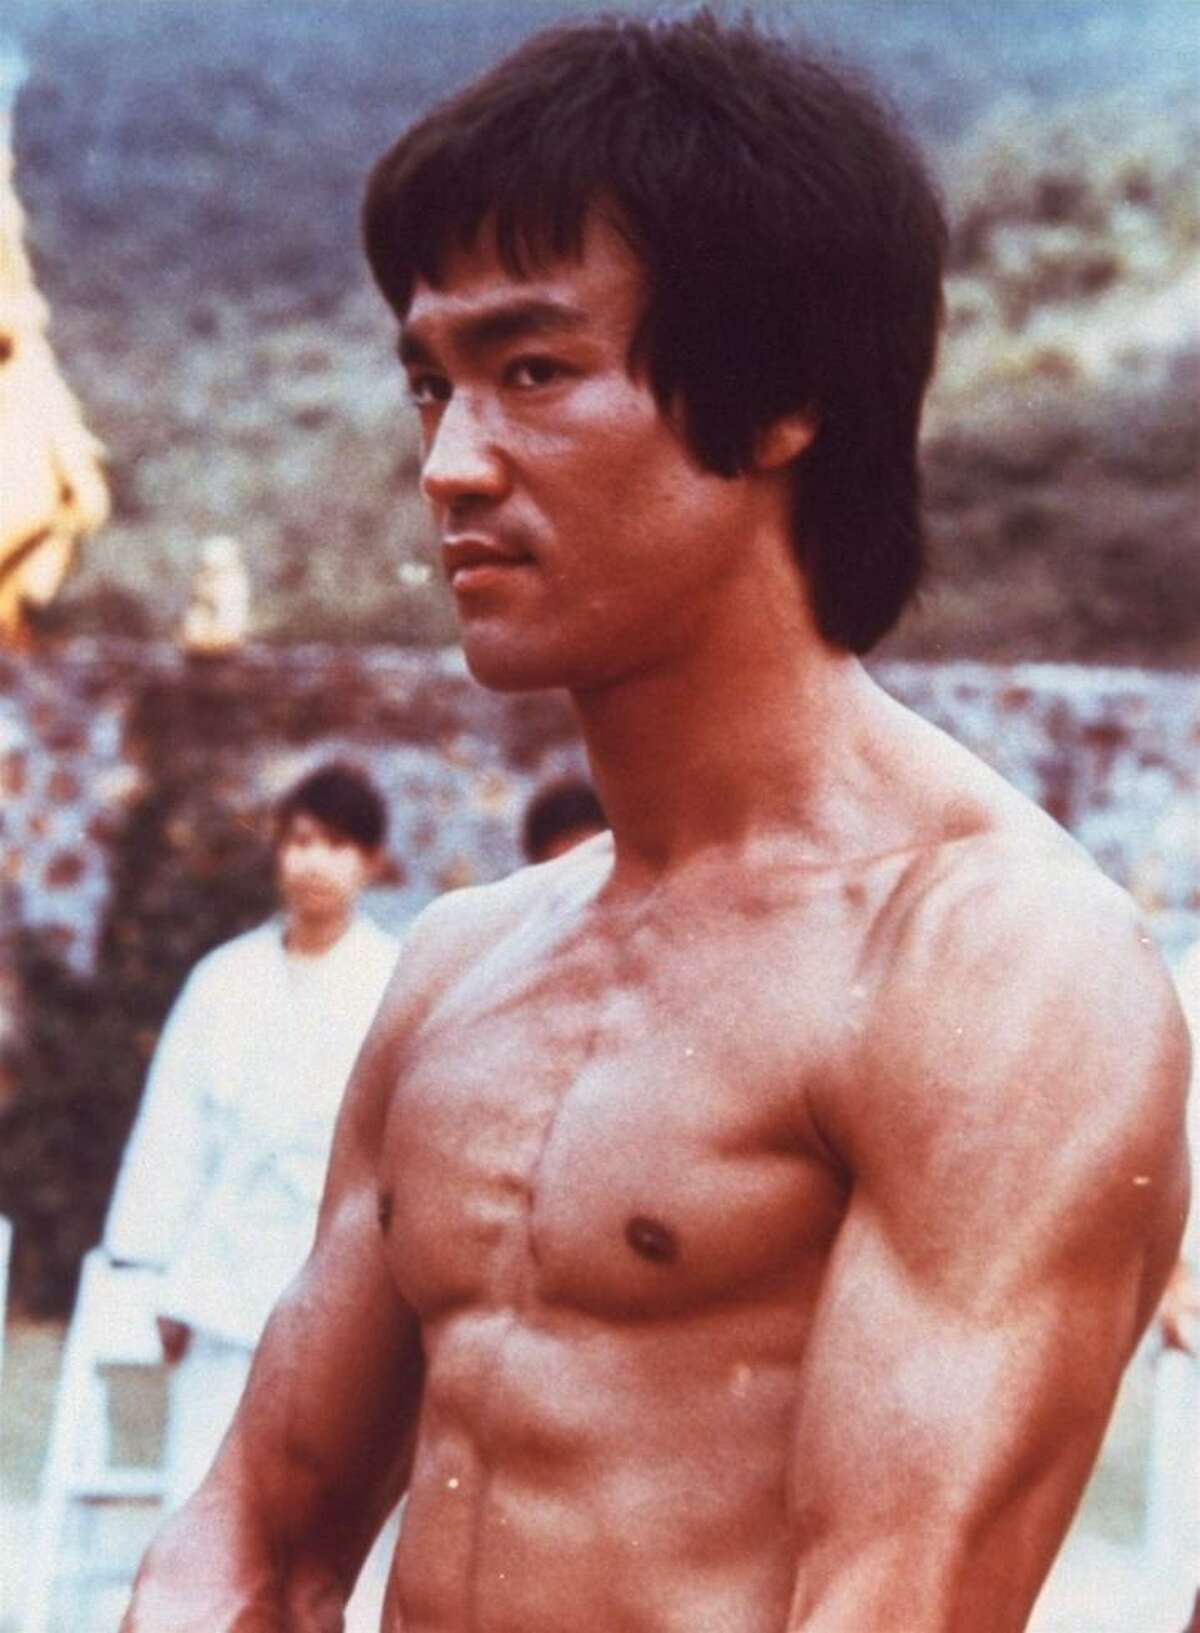 San Francisco native Bruce Lee is shown in a scene from the 1973 film